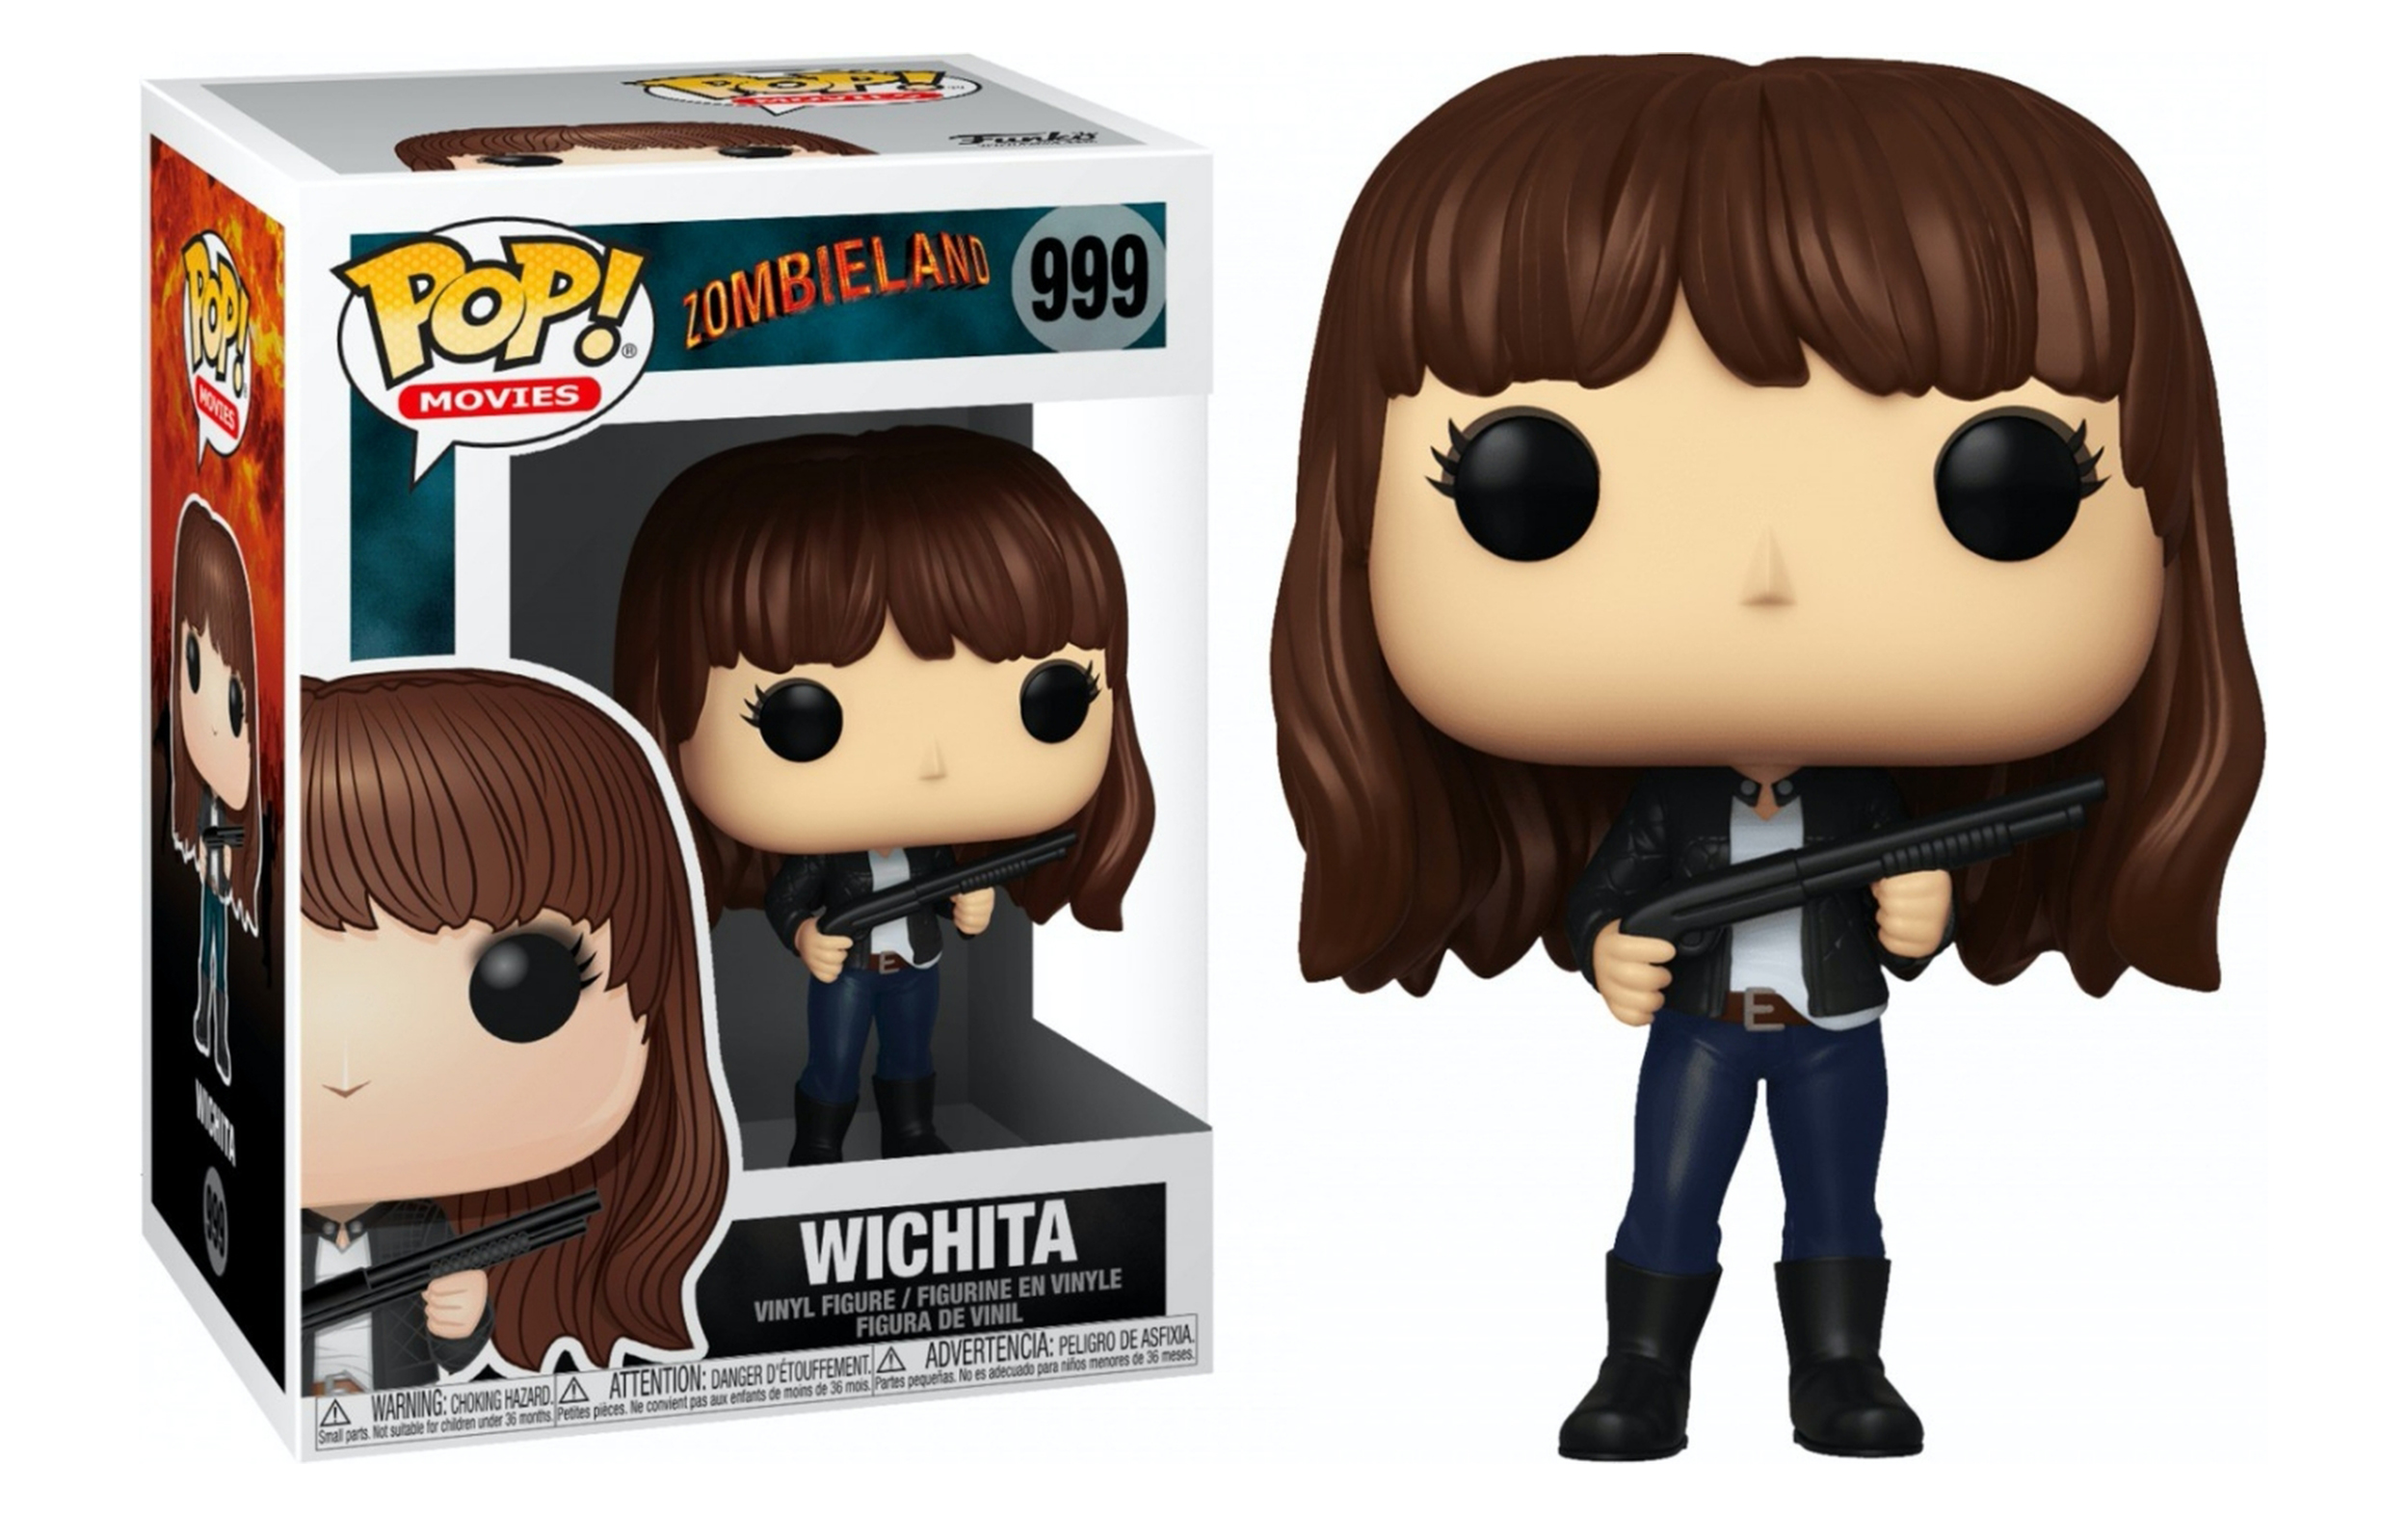 Zombieland Wichita 999 Funko POP Vinyl Figure